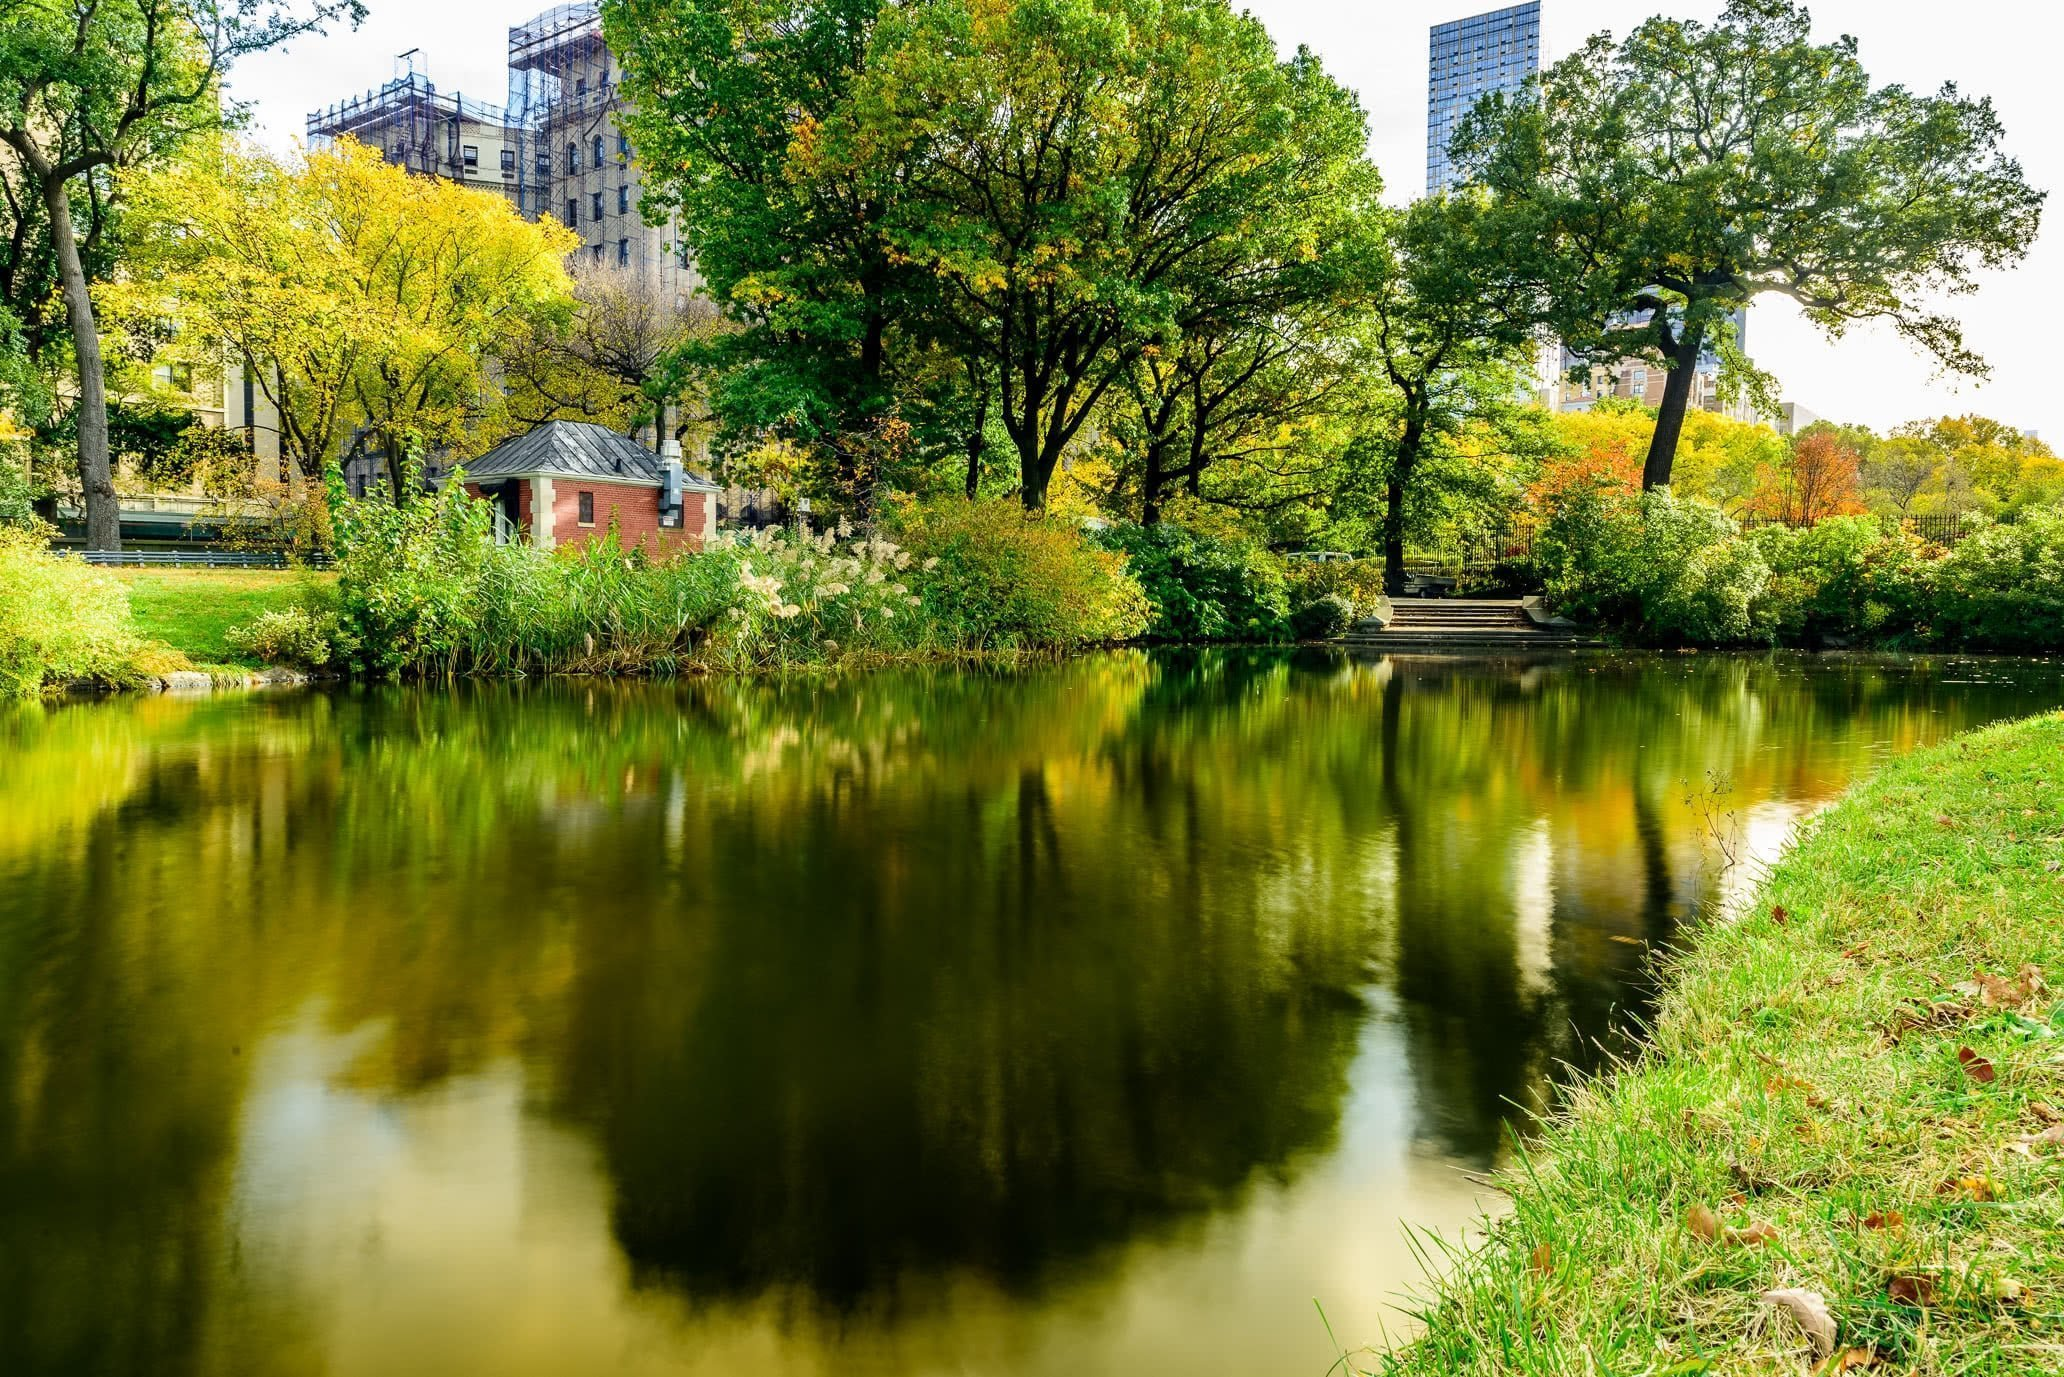 Central Park, Harlem Meer and Maoz Vegetarian